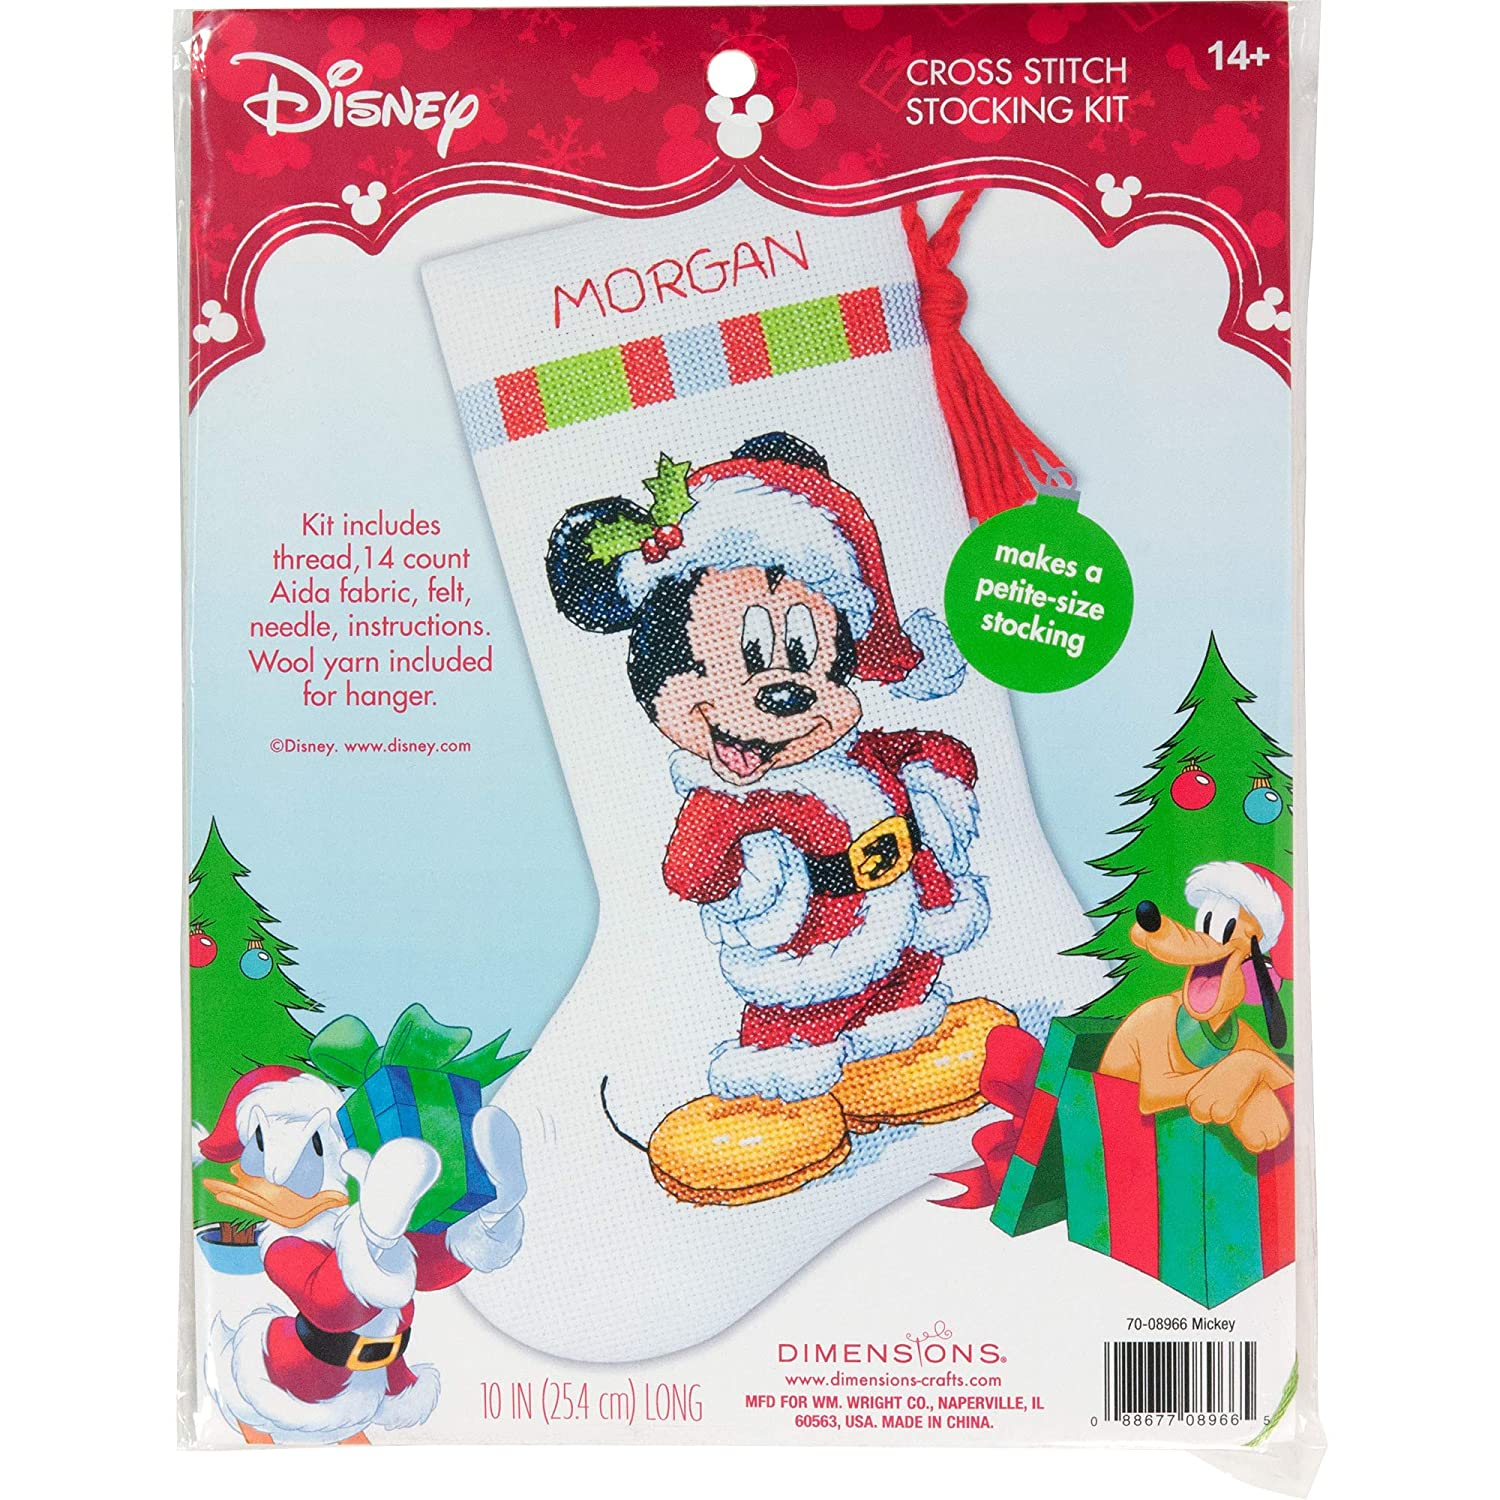 Disney Cross Stitch Christmas Stocking Patterns.Dimensions Mickey Mouse Christmas Stocking Counted Cross Stitch Kit For Beginners 14 Count White Aida Cloth 10 L